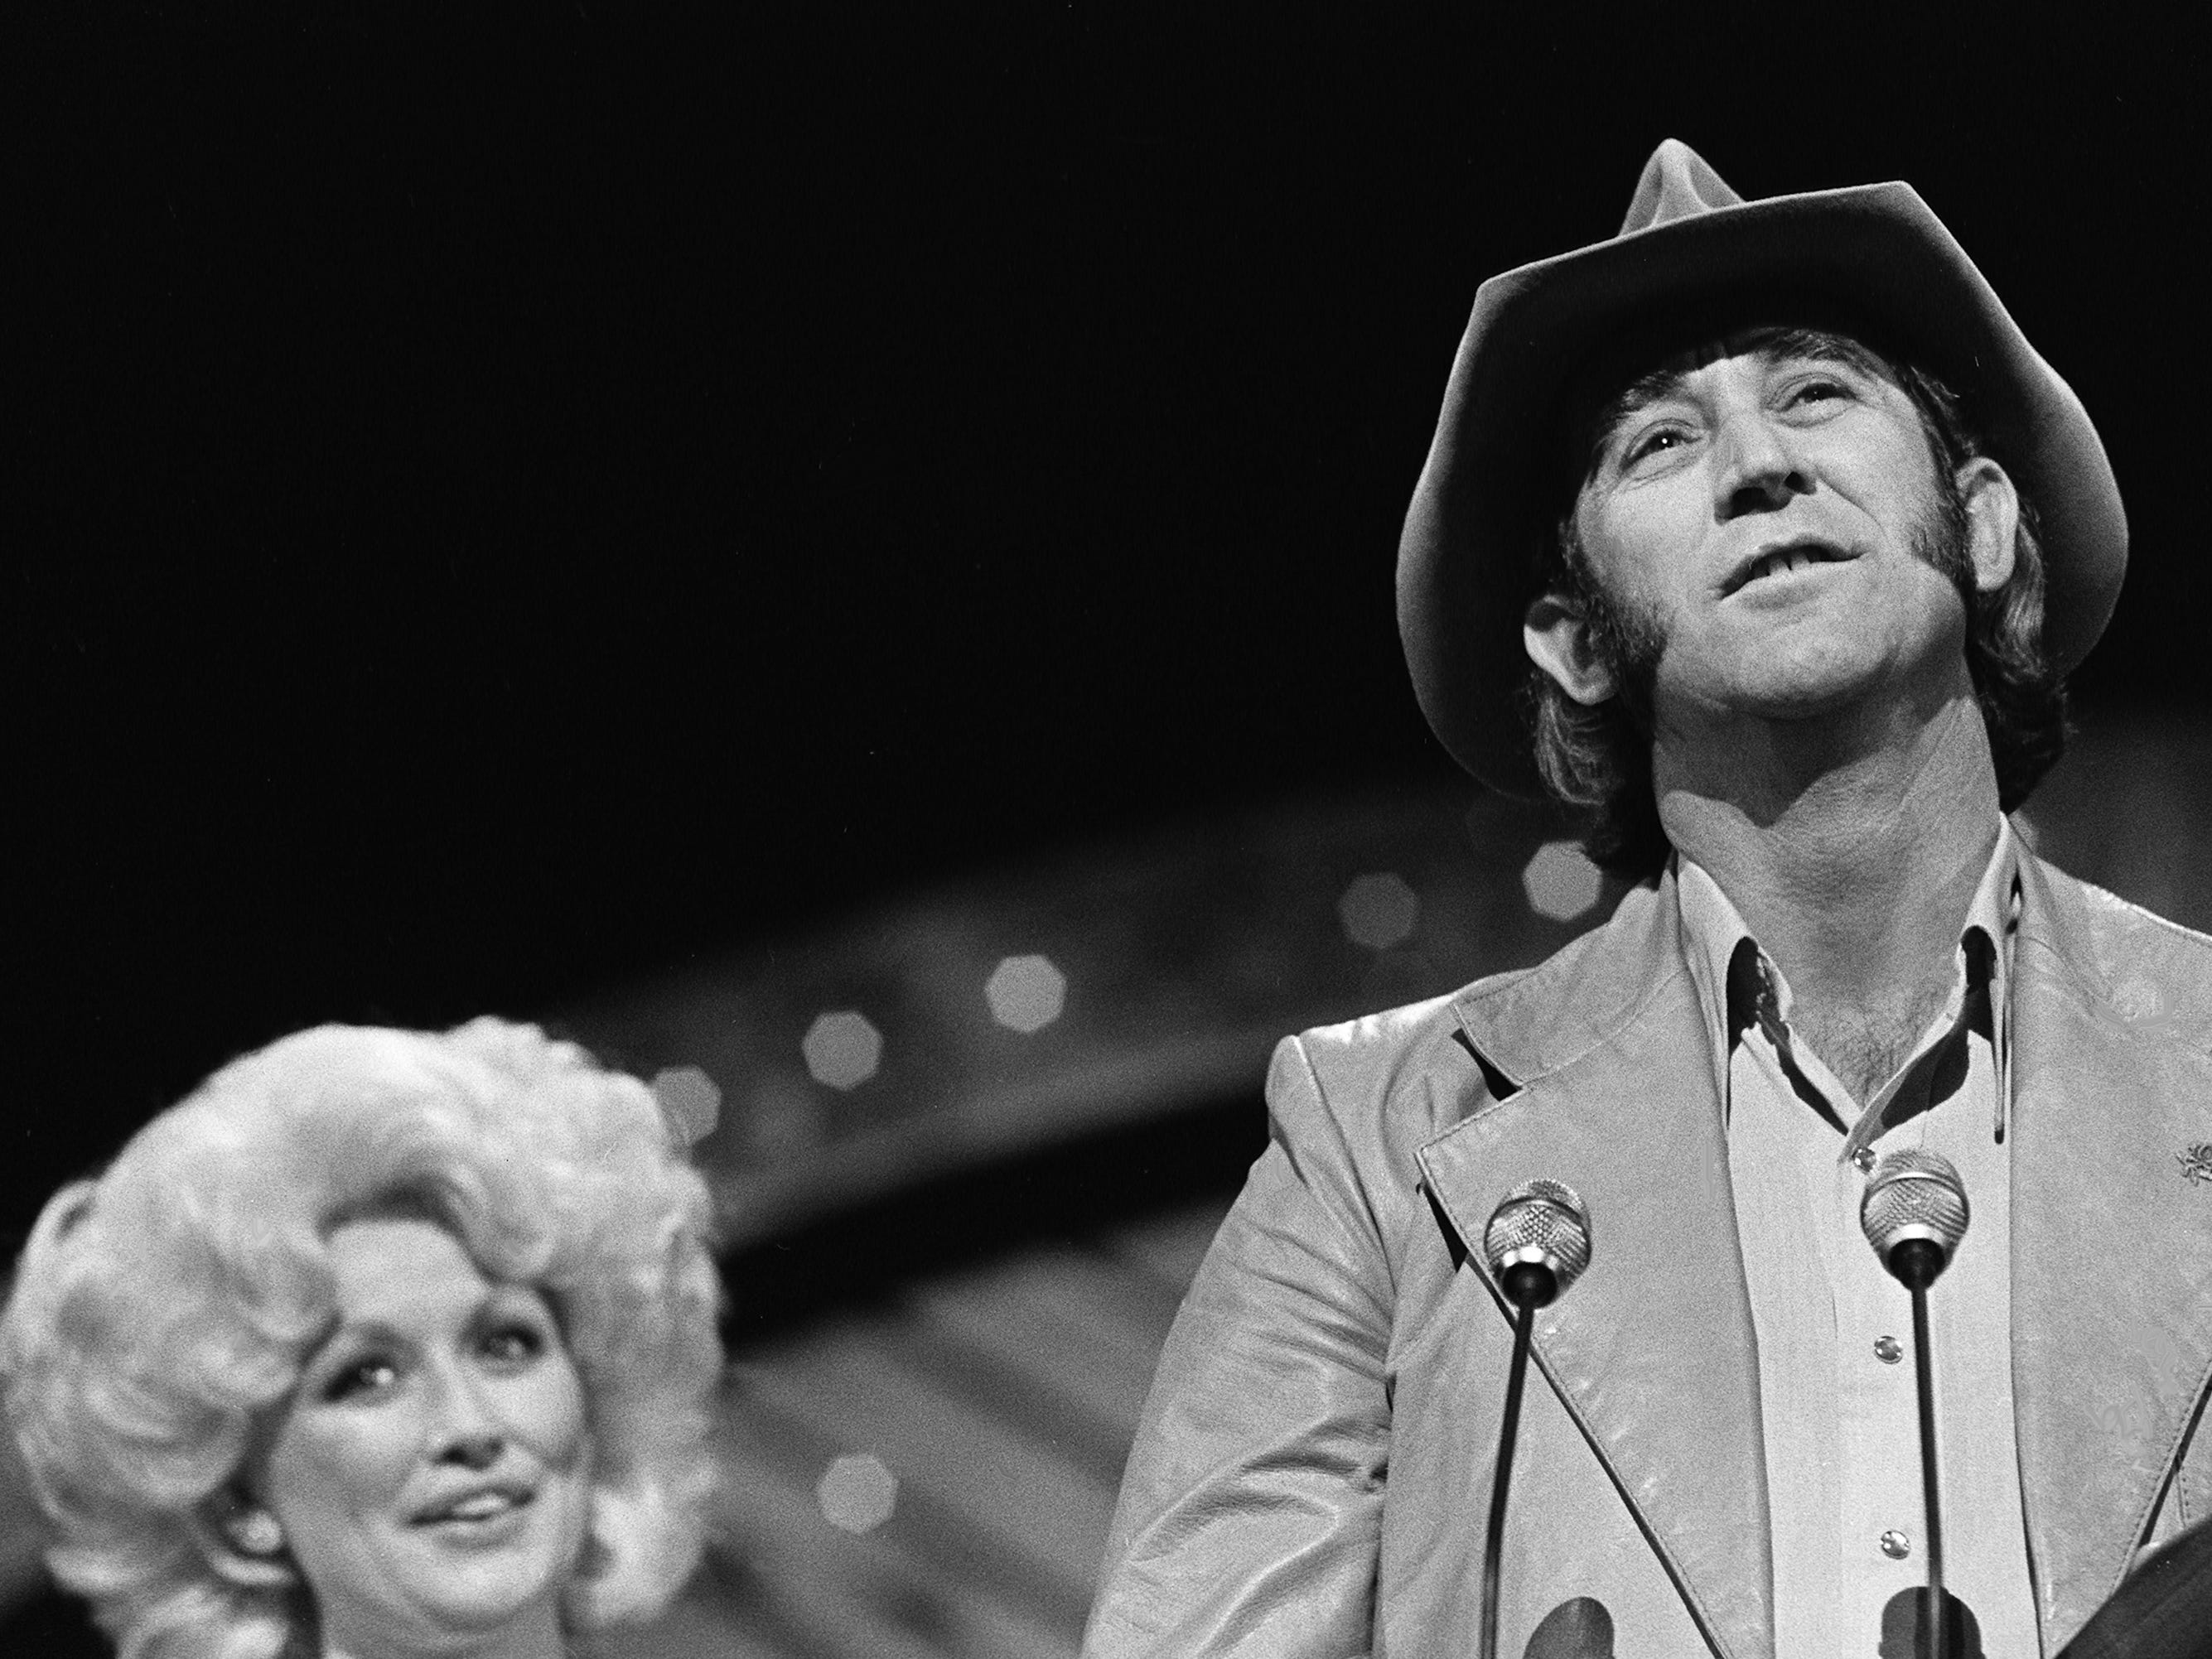 Don Williams accepts the Male Vocalist of the Year award during the 12th annual CMA Awards show Oct. 9, 1978. Looking on is presenter Dolly Parton.